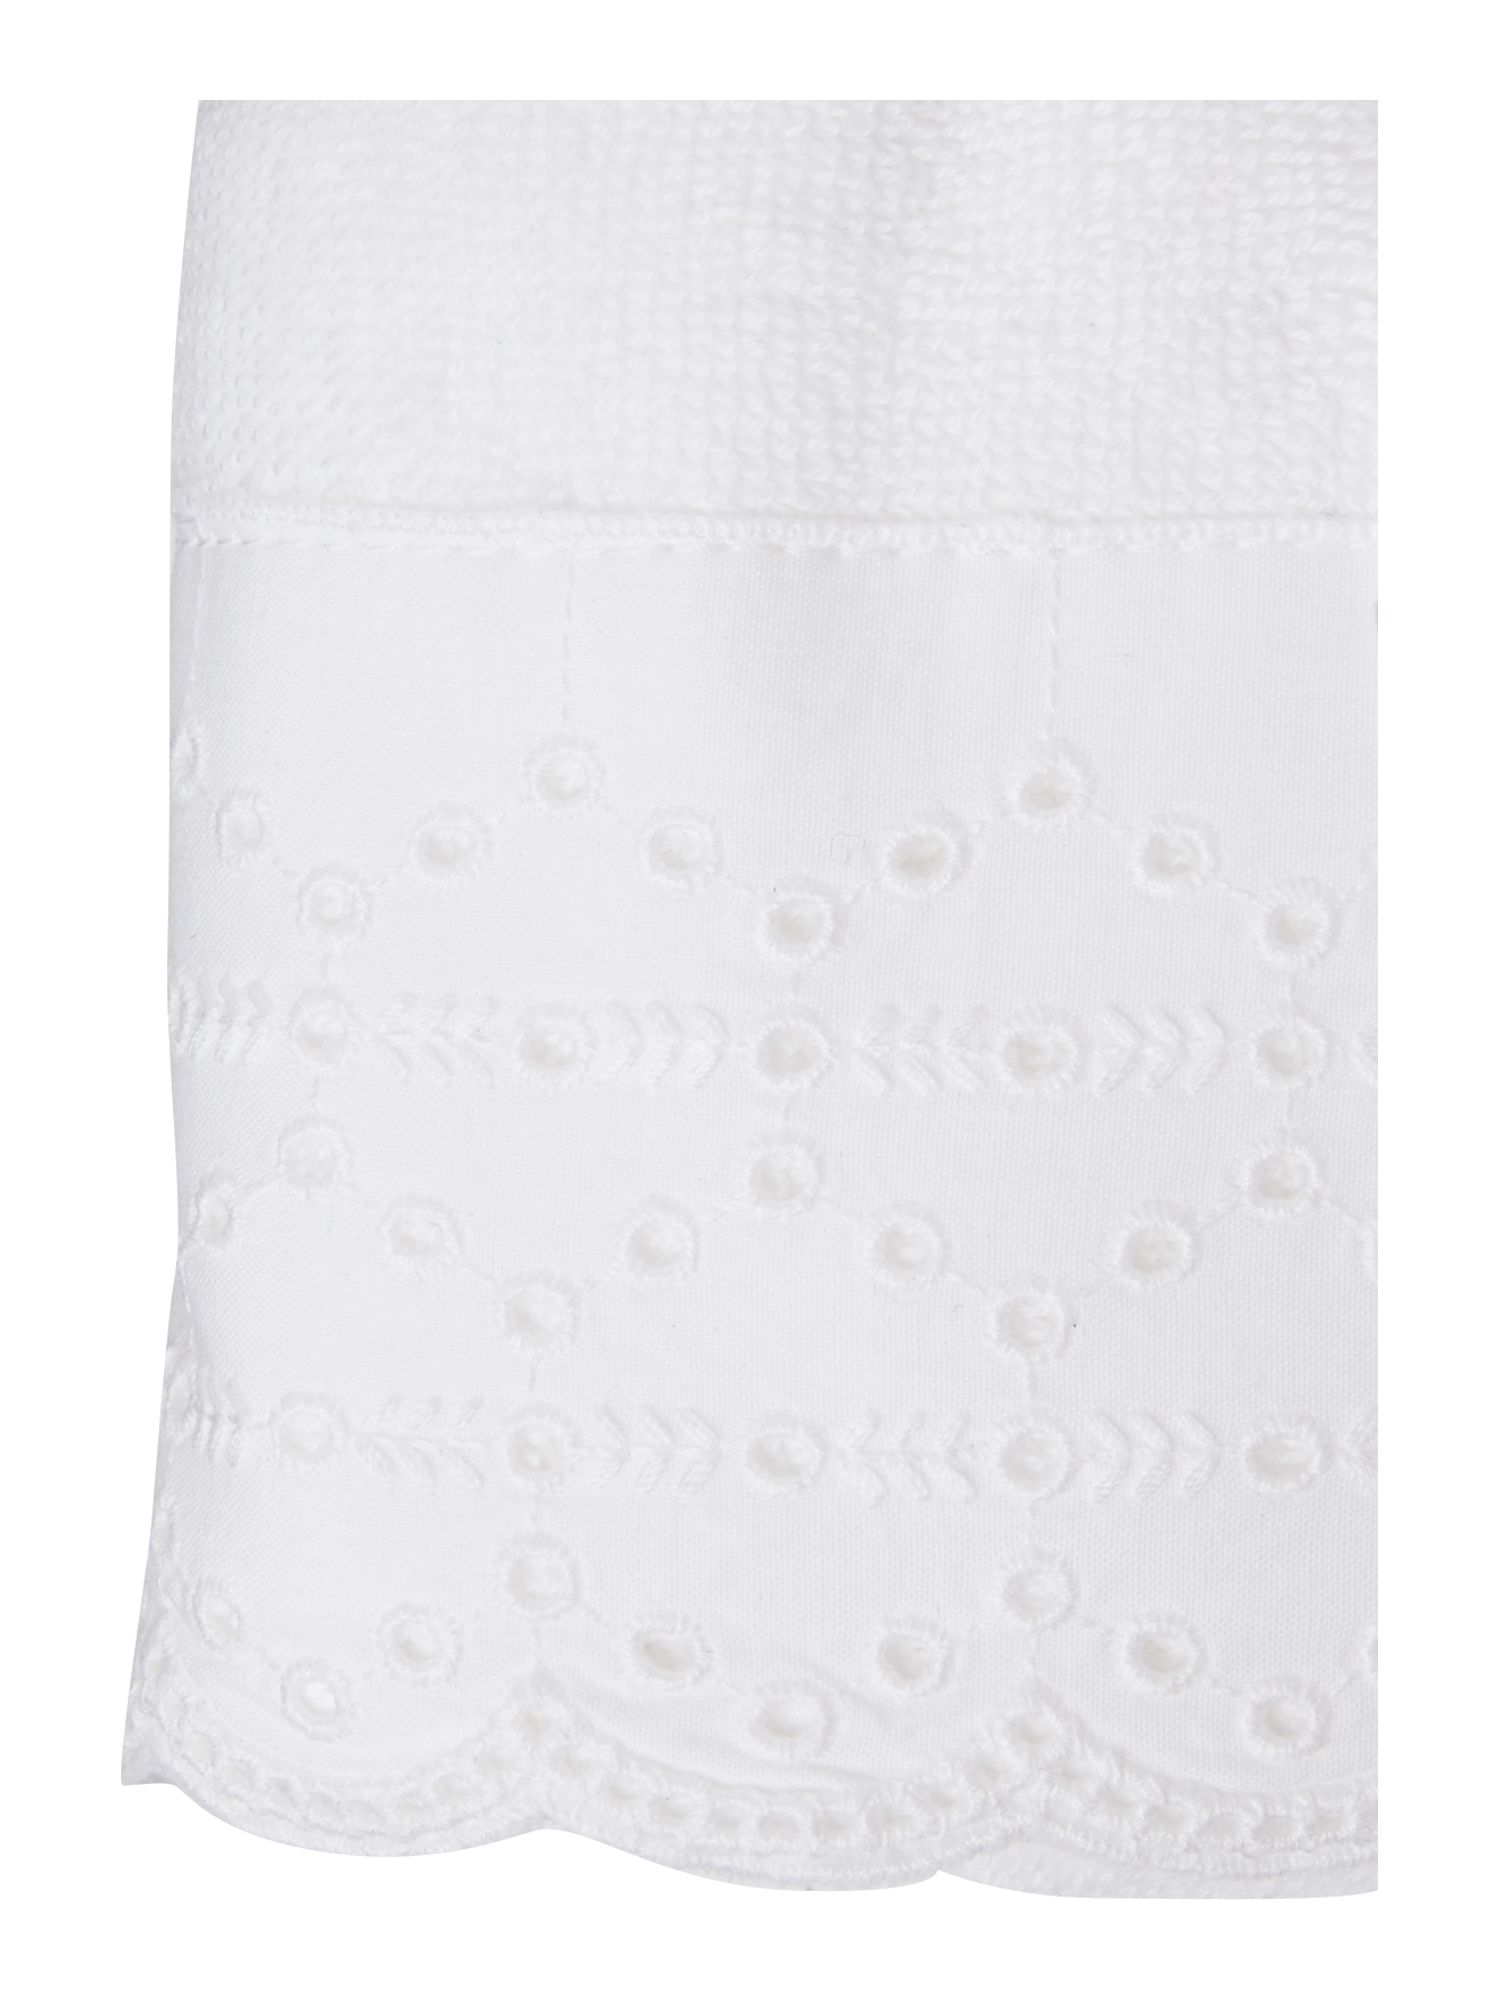 Lace trim guest towel pack of two in white